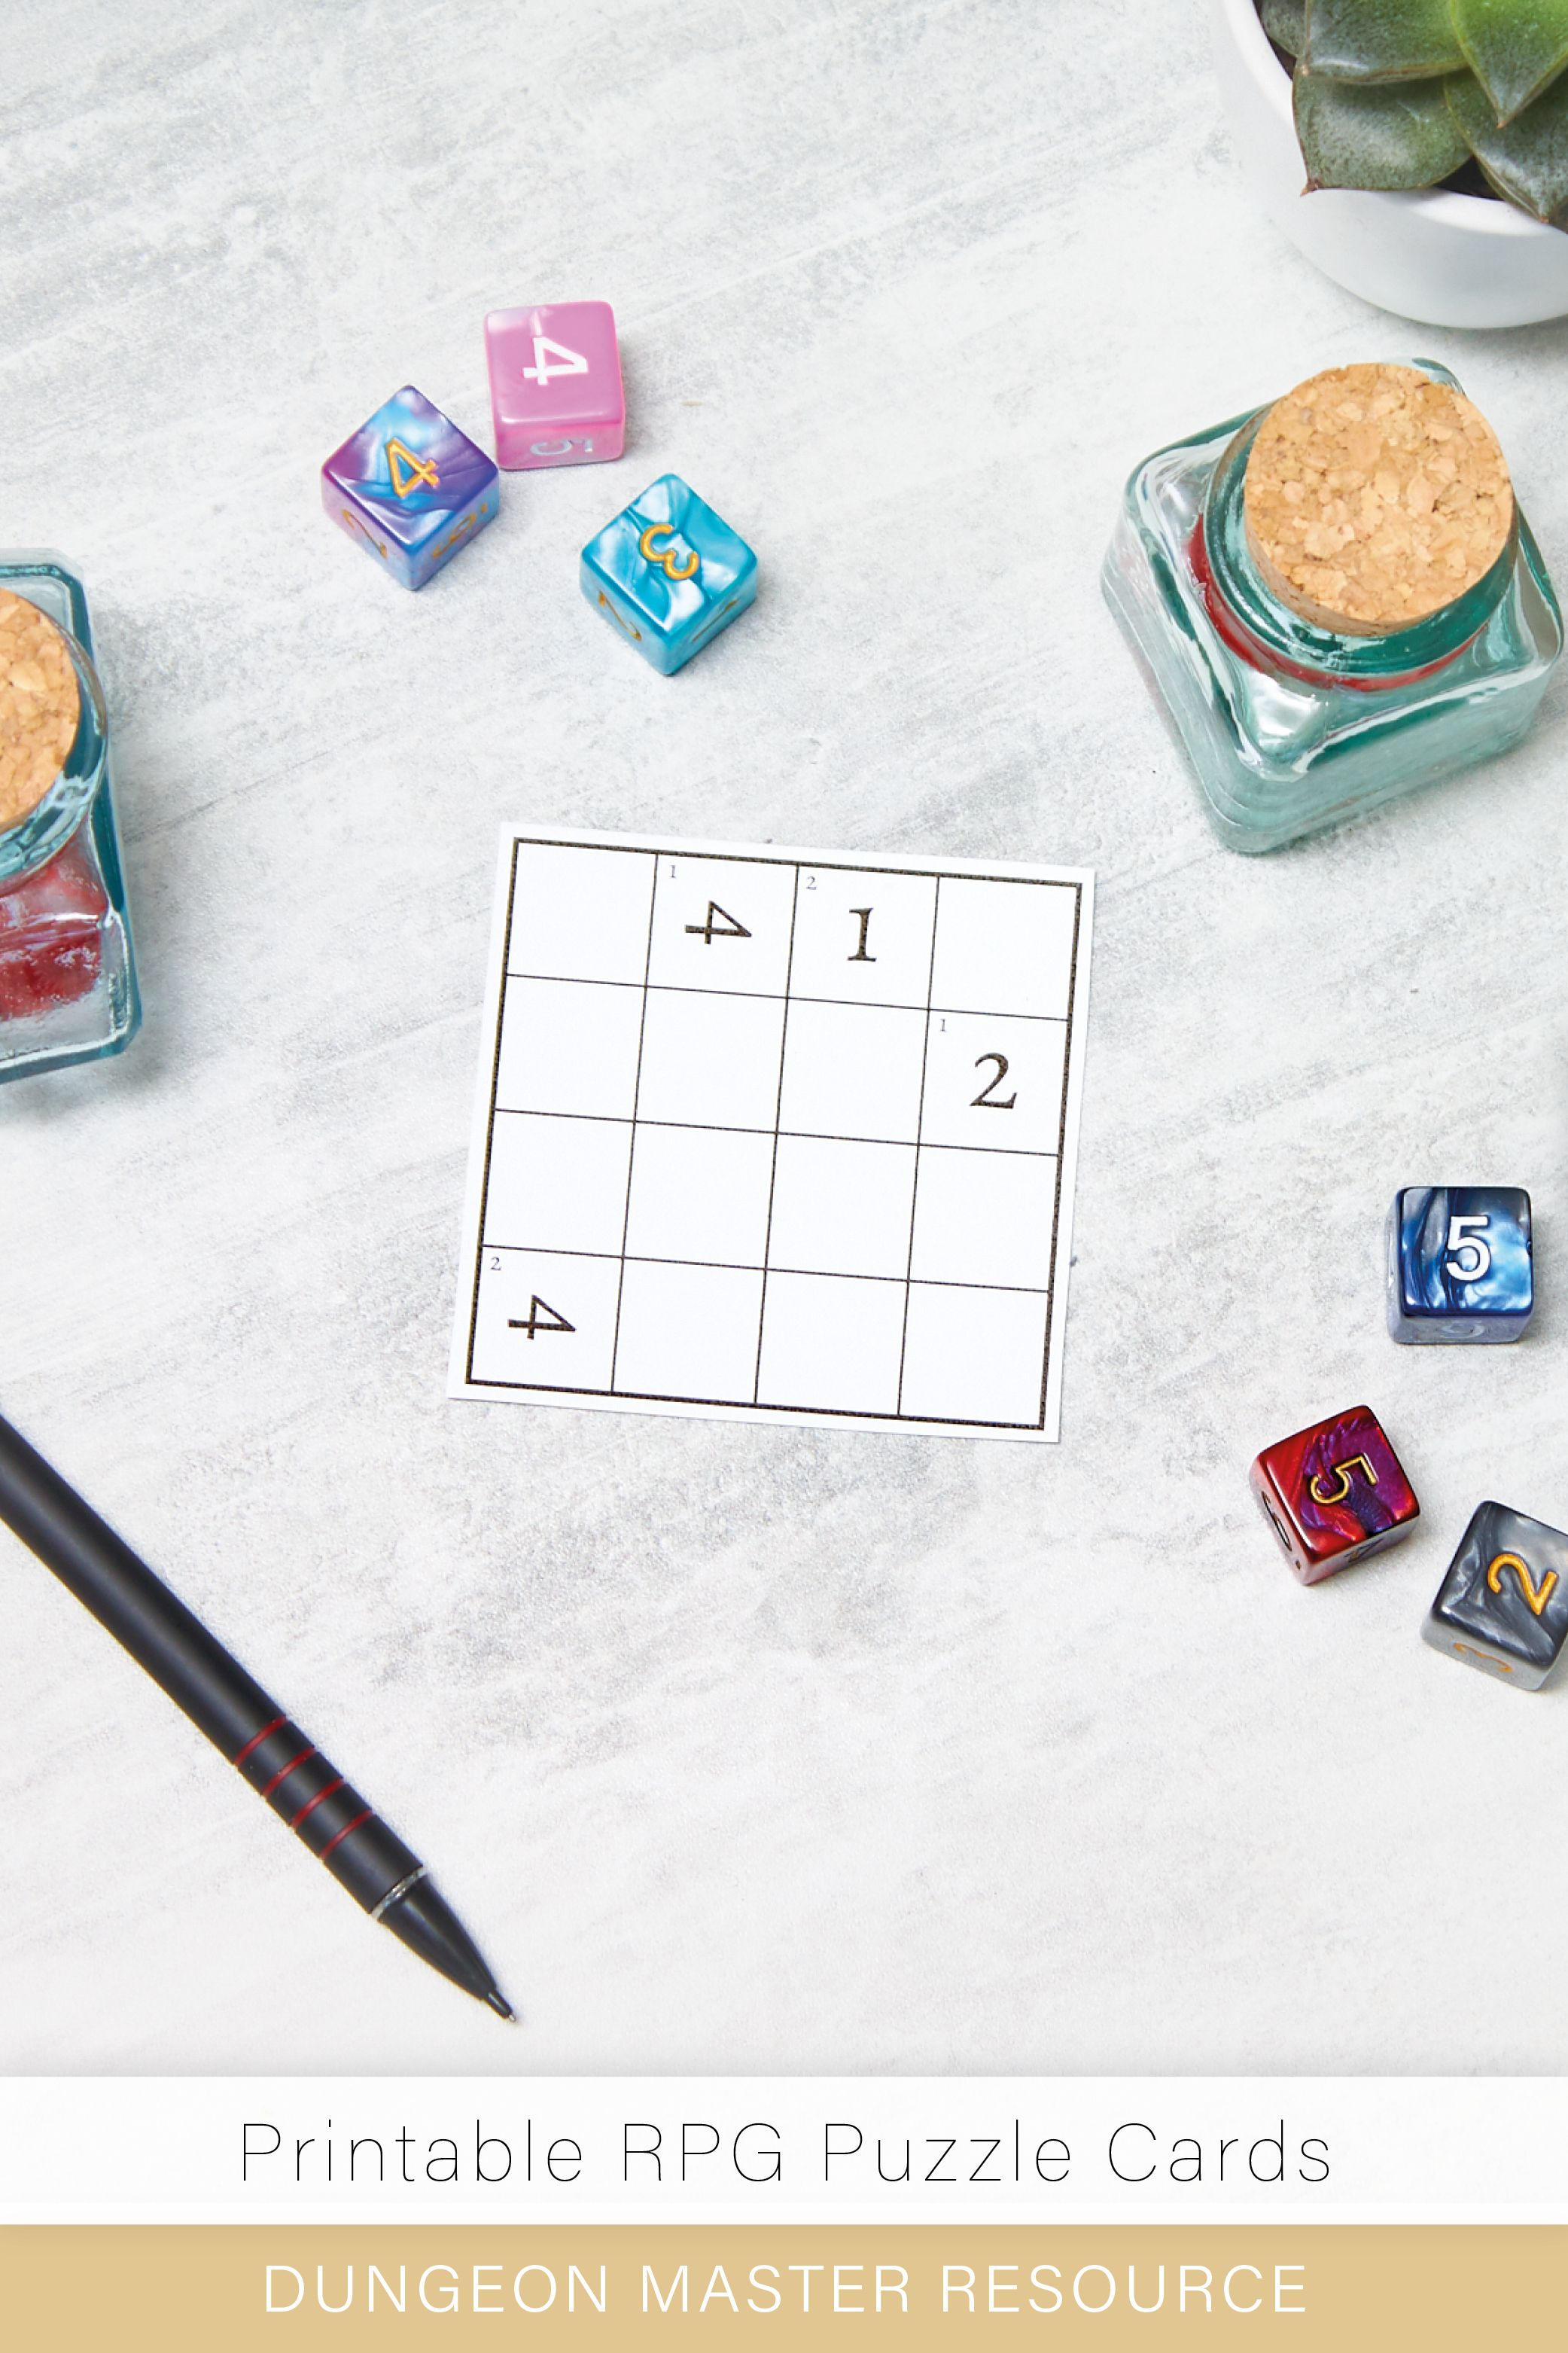 Dice Lock Pick Puzzle Squares Minigame Tabletop Gaming Logic Challenge Dungeons And Dragons D D Pathfinder Tabletop Rpg In 2020 Puzzles And Dragons Puzzle Solving Puzzle